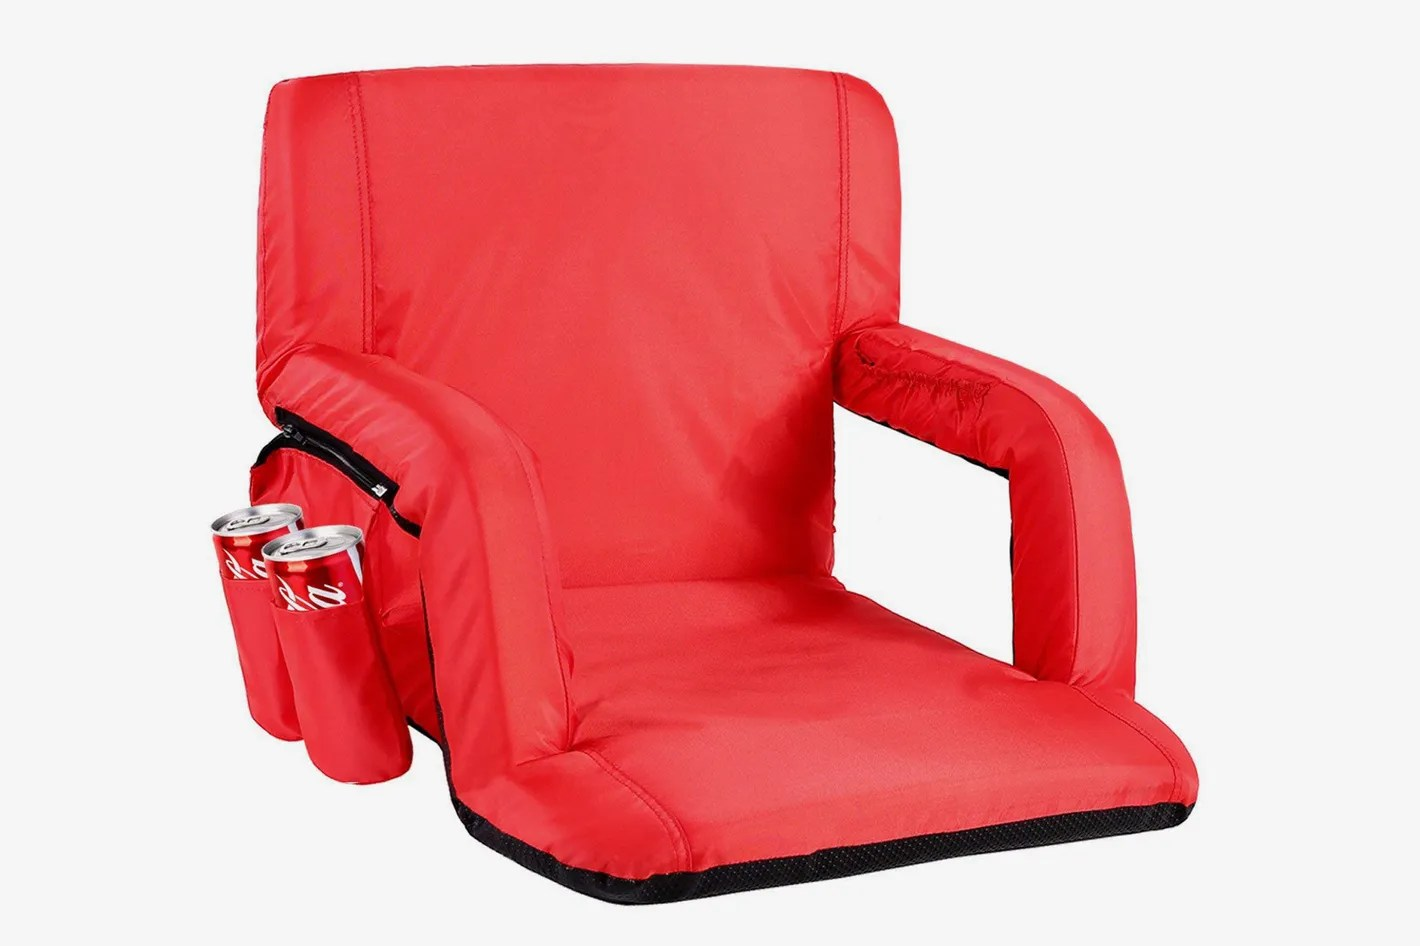 Basketball Chairs The Best Stadium Seats Reviewed By Sports Fans 2018